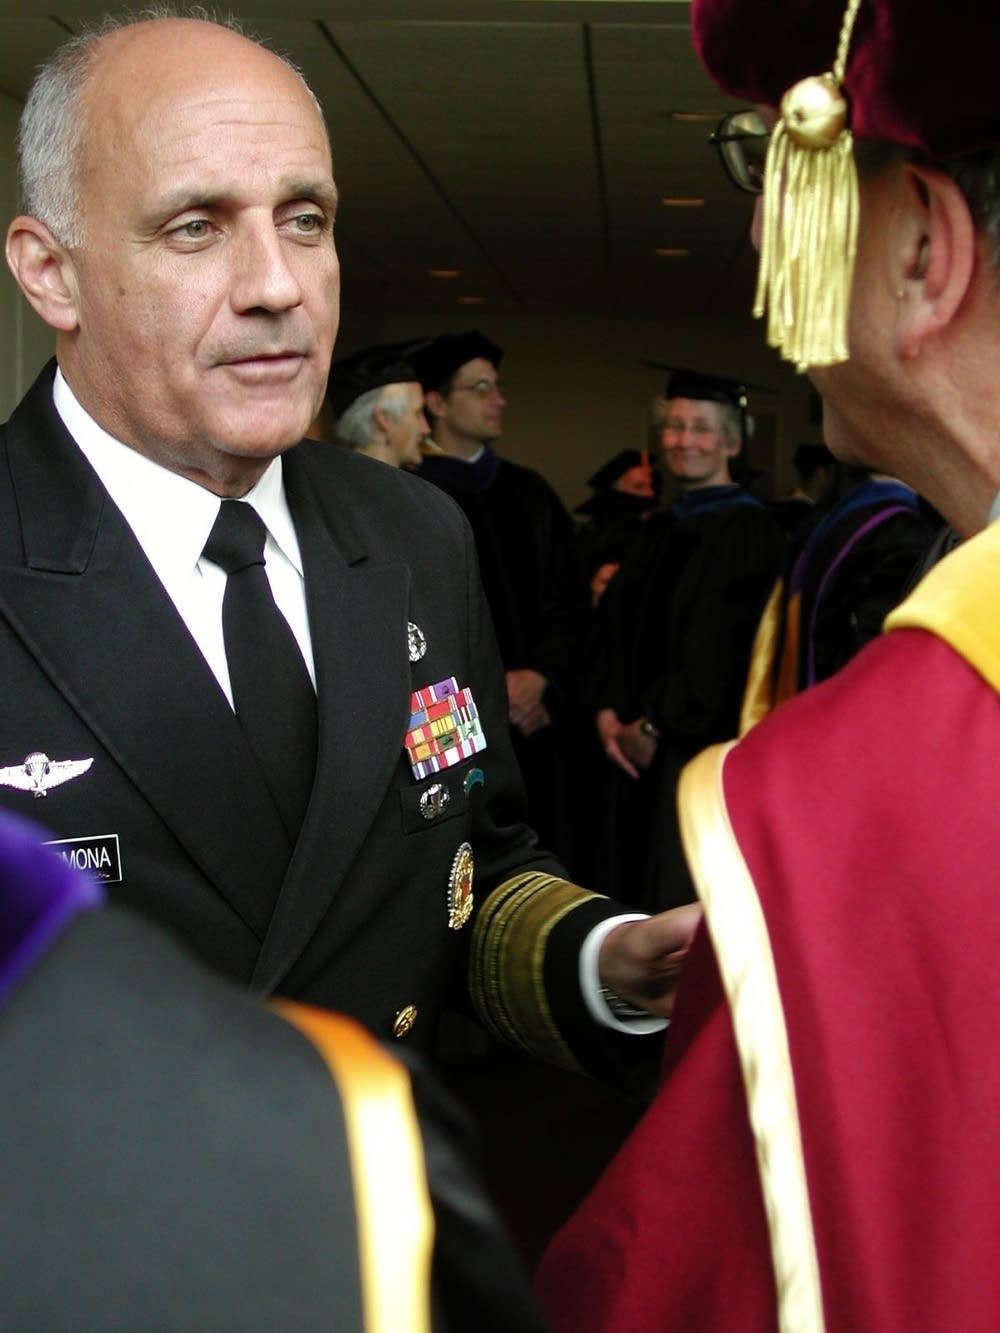 Surgeon General Richard Carmona